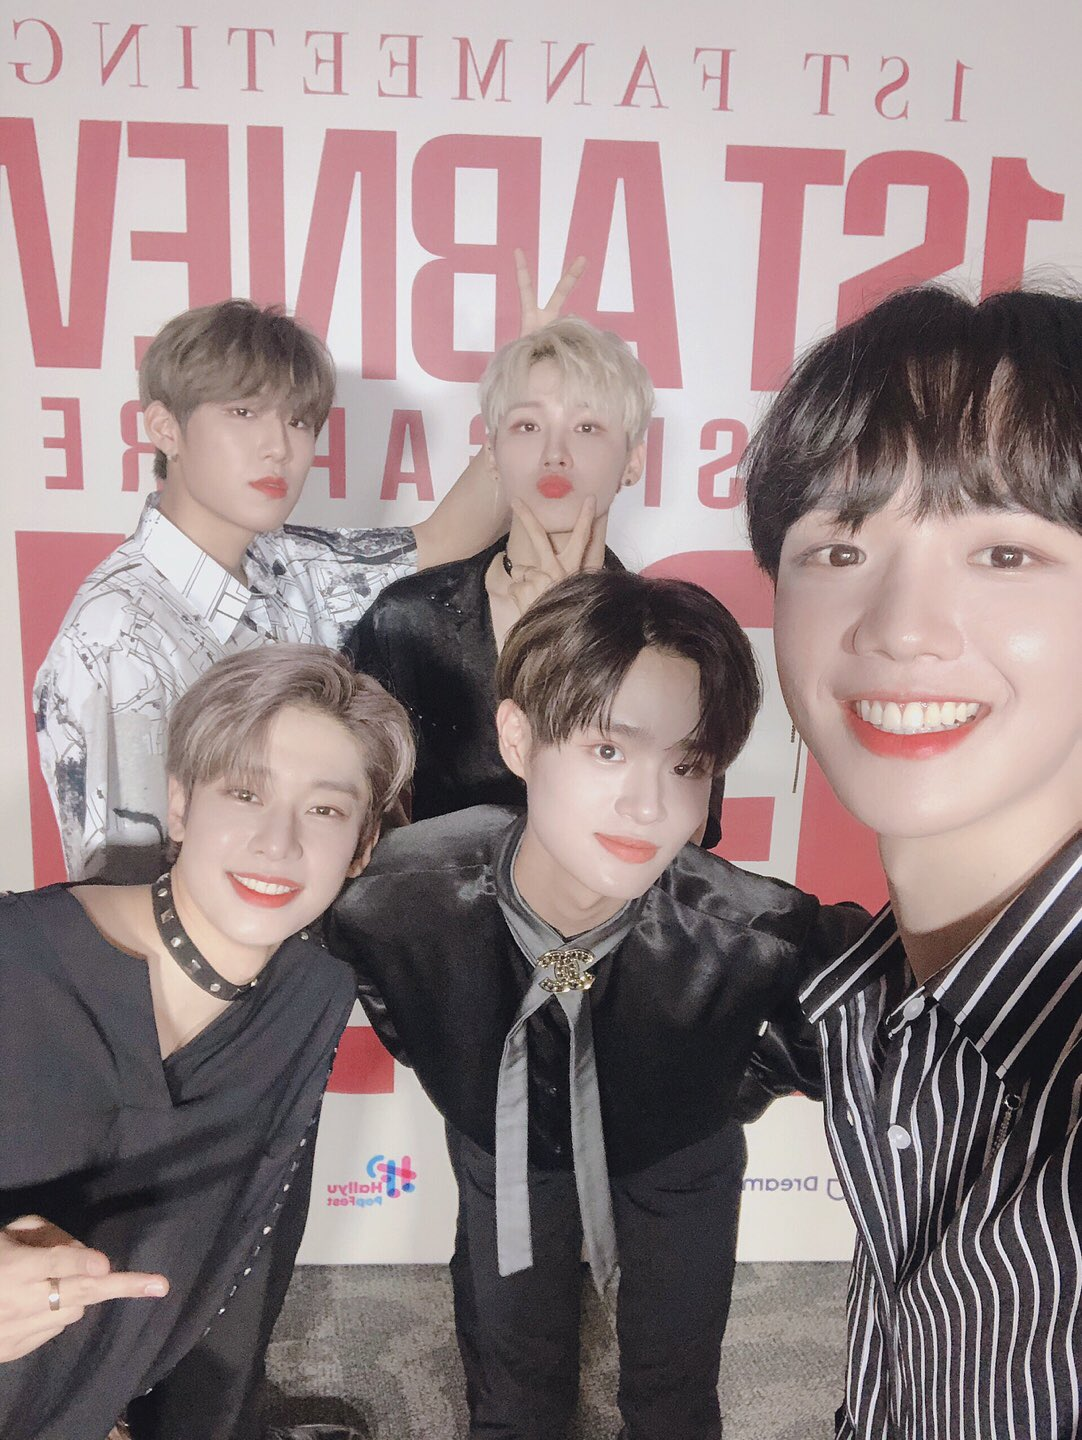 ab6ix, ab6ix facts, ab6ix height, ab6ix members, ab6ix profile, ab6ix age,